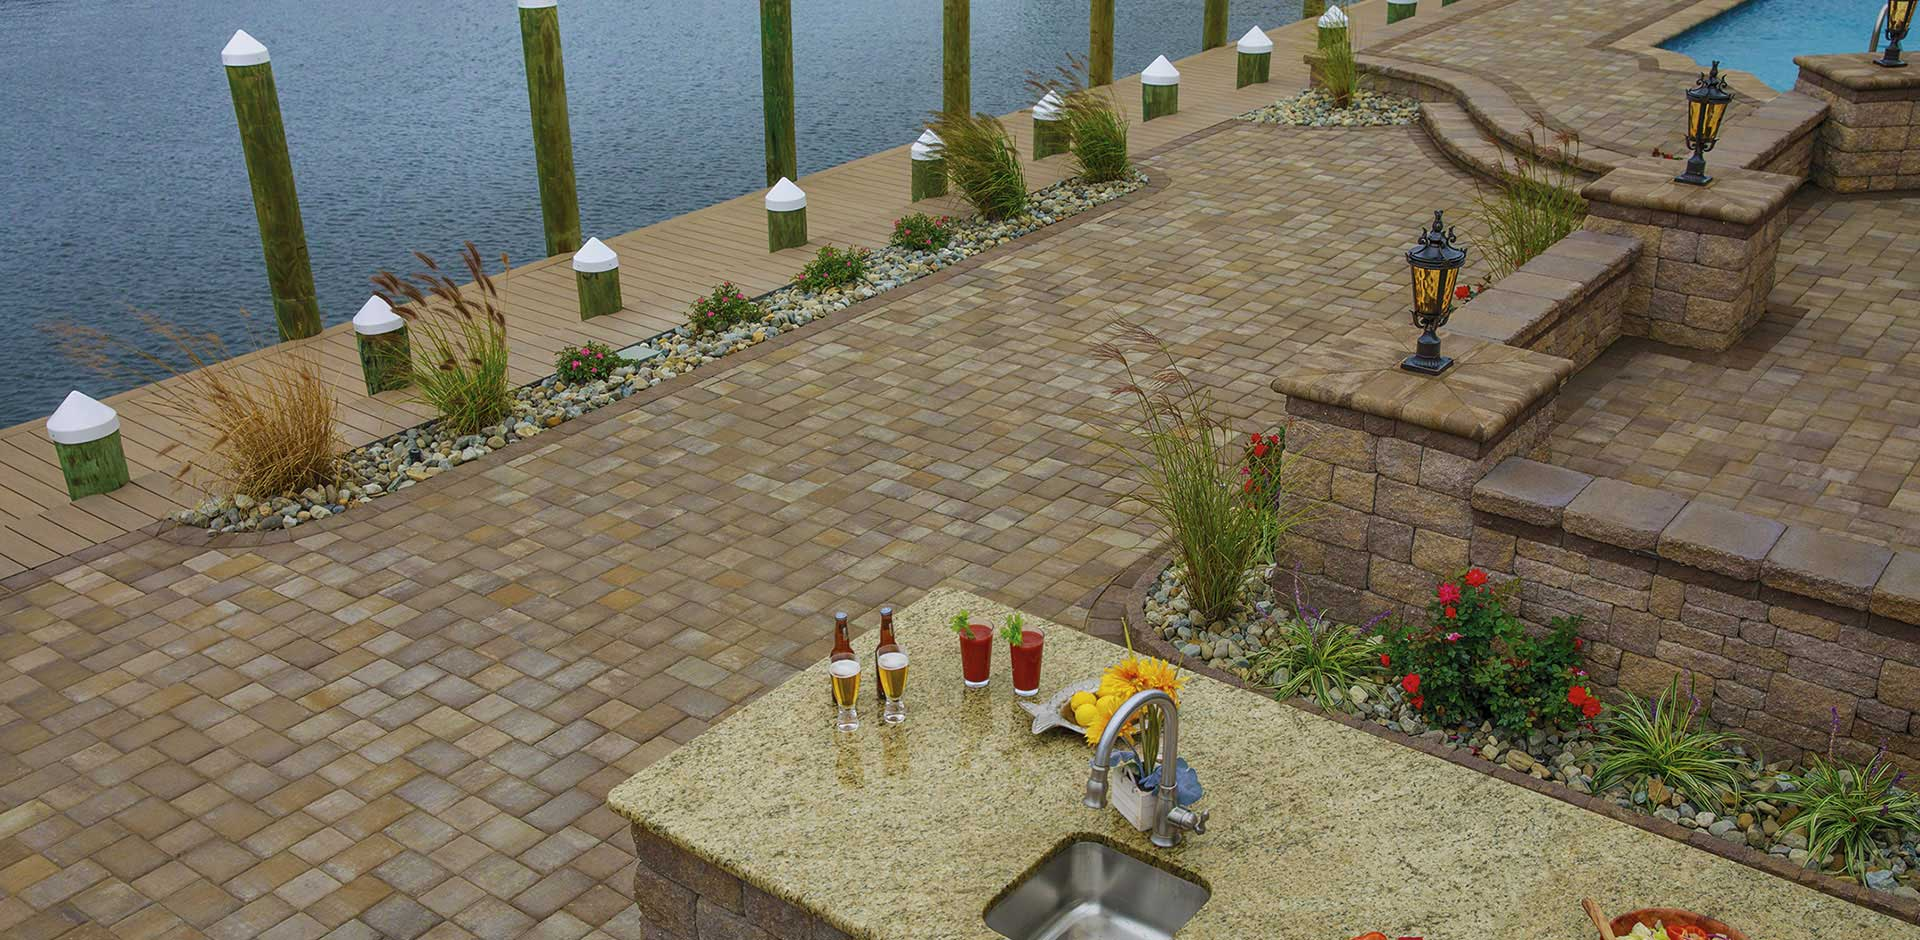 Outdoor living area along the water made of Roundtable pavers for walkway